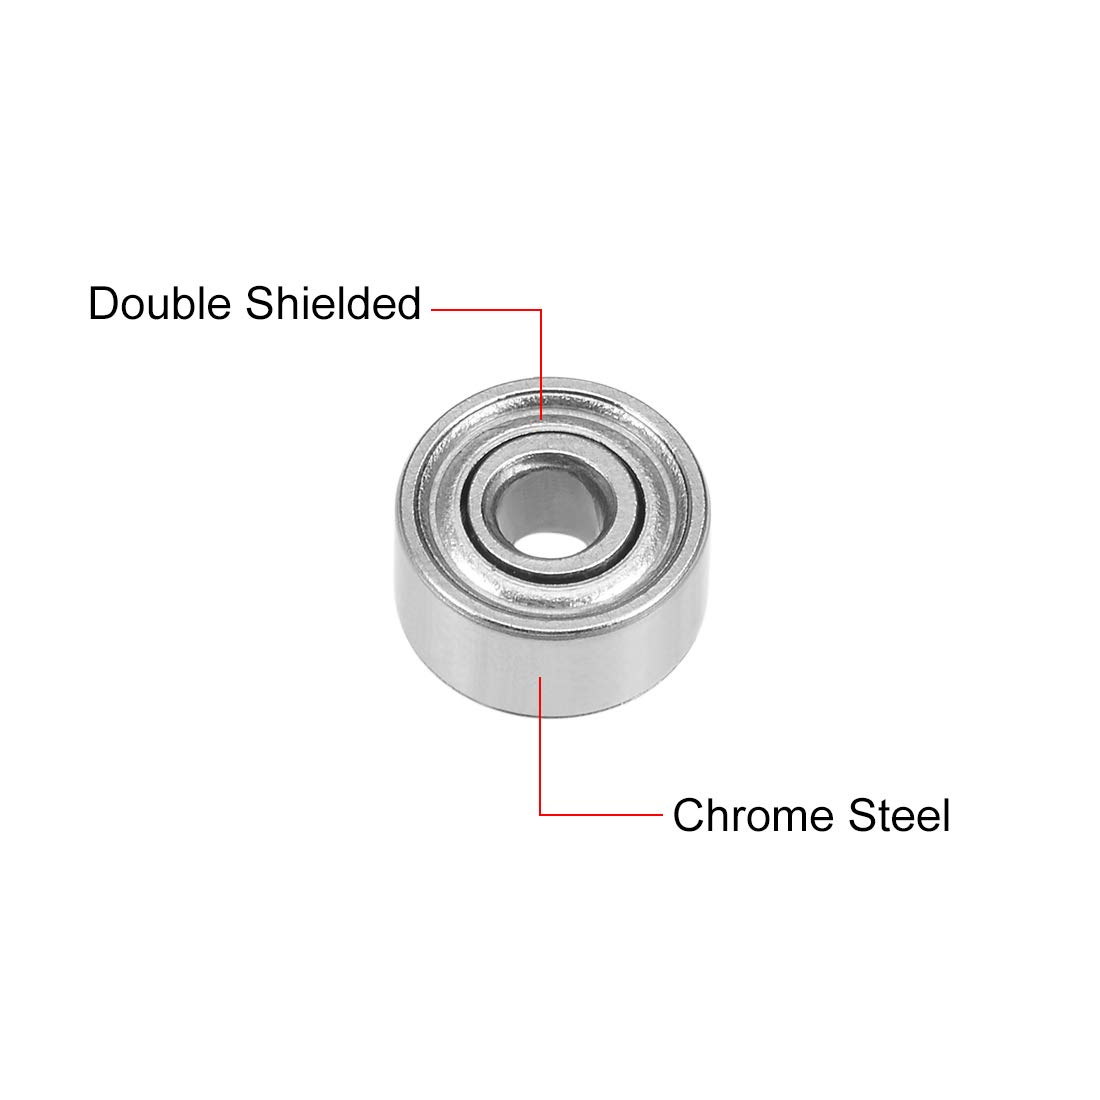 sourcing map 692ZZ Deep Groove Ball Bearing 2x6x3mm Double Shielded Chrome Steel Bearings 2-Pack